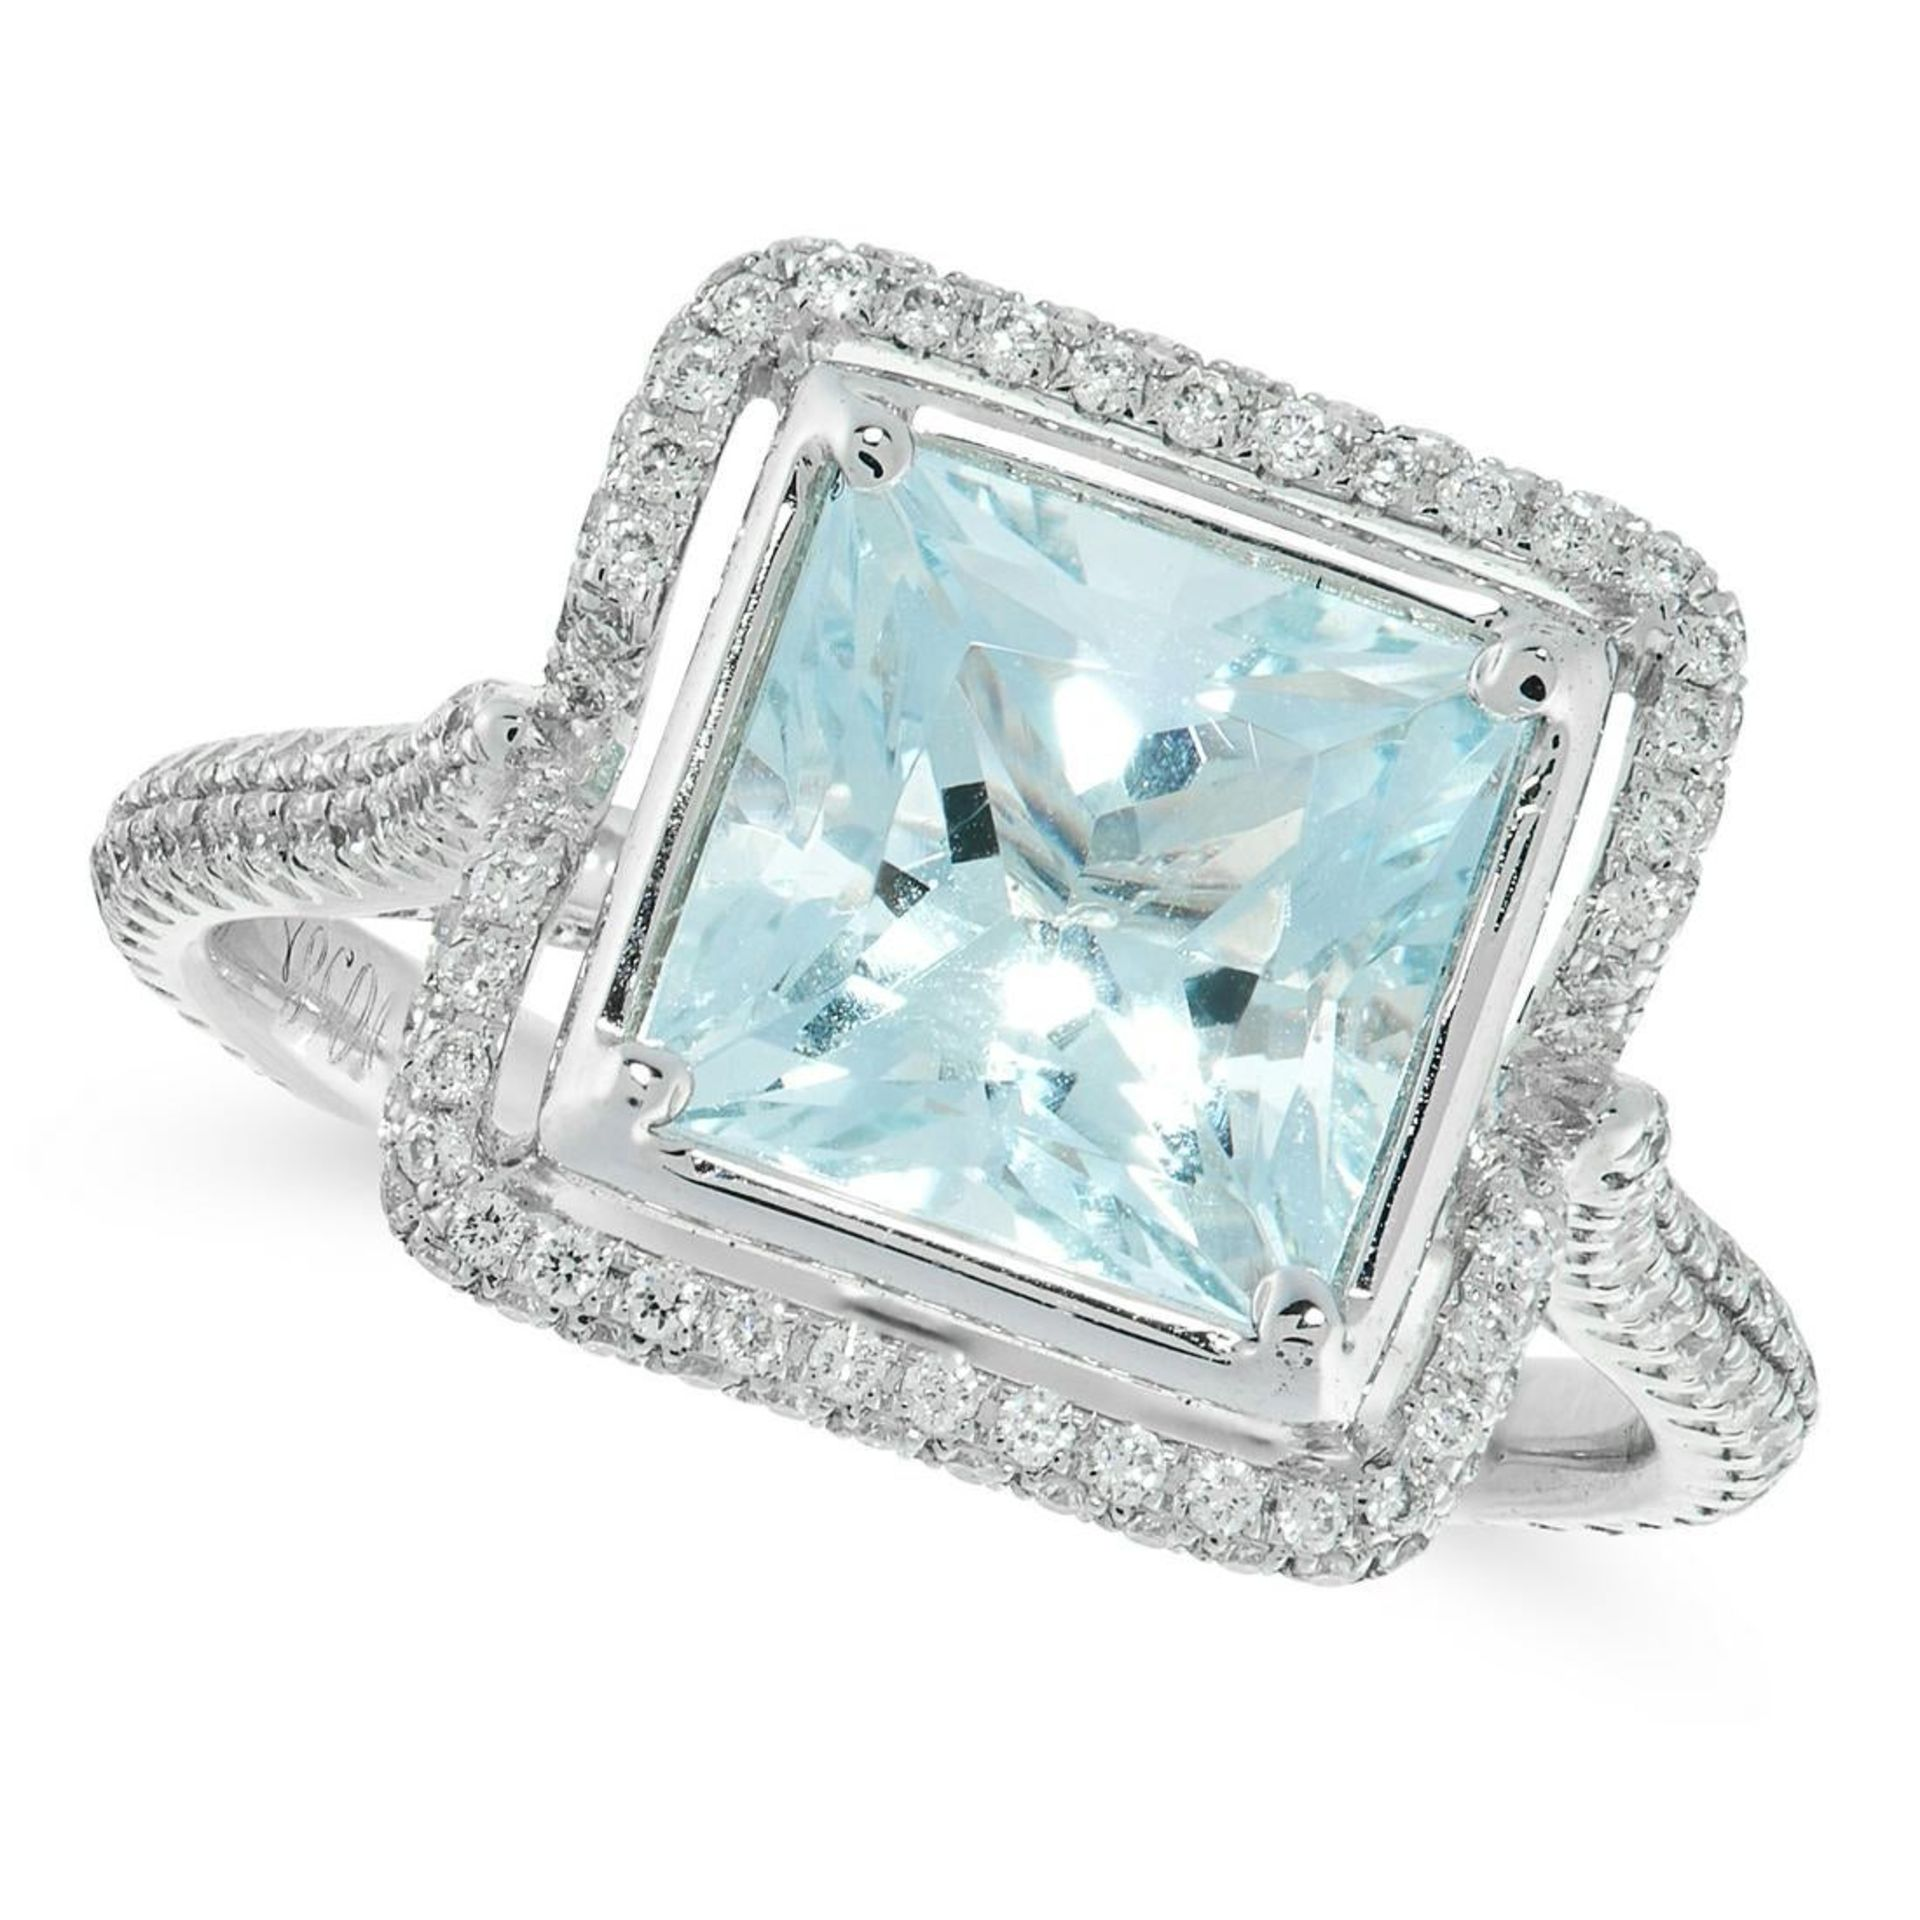 AN AQUAMARINE AND DIAMOND DRESS RING in 18ct white gold, set with a princess cut aquamarine of 2.